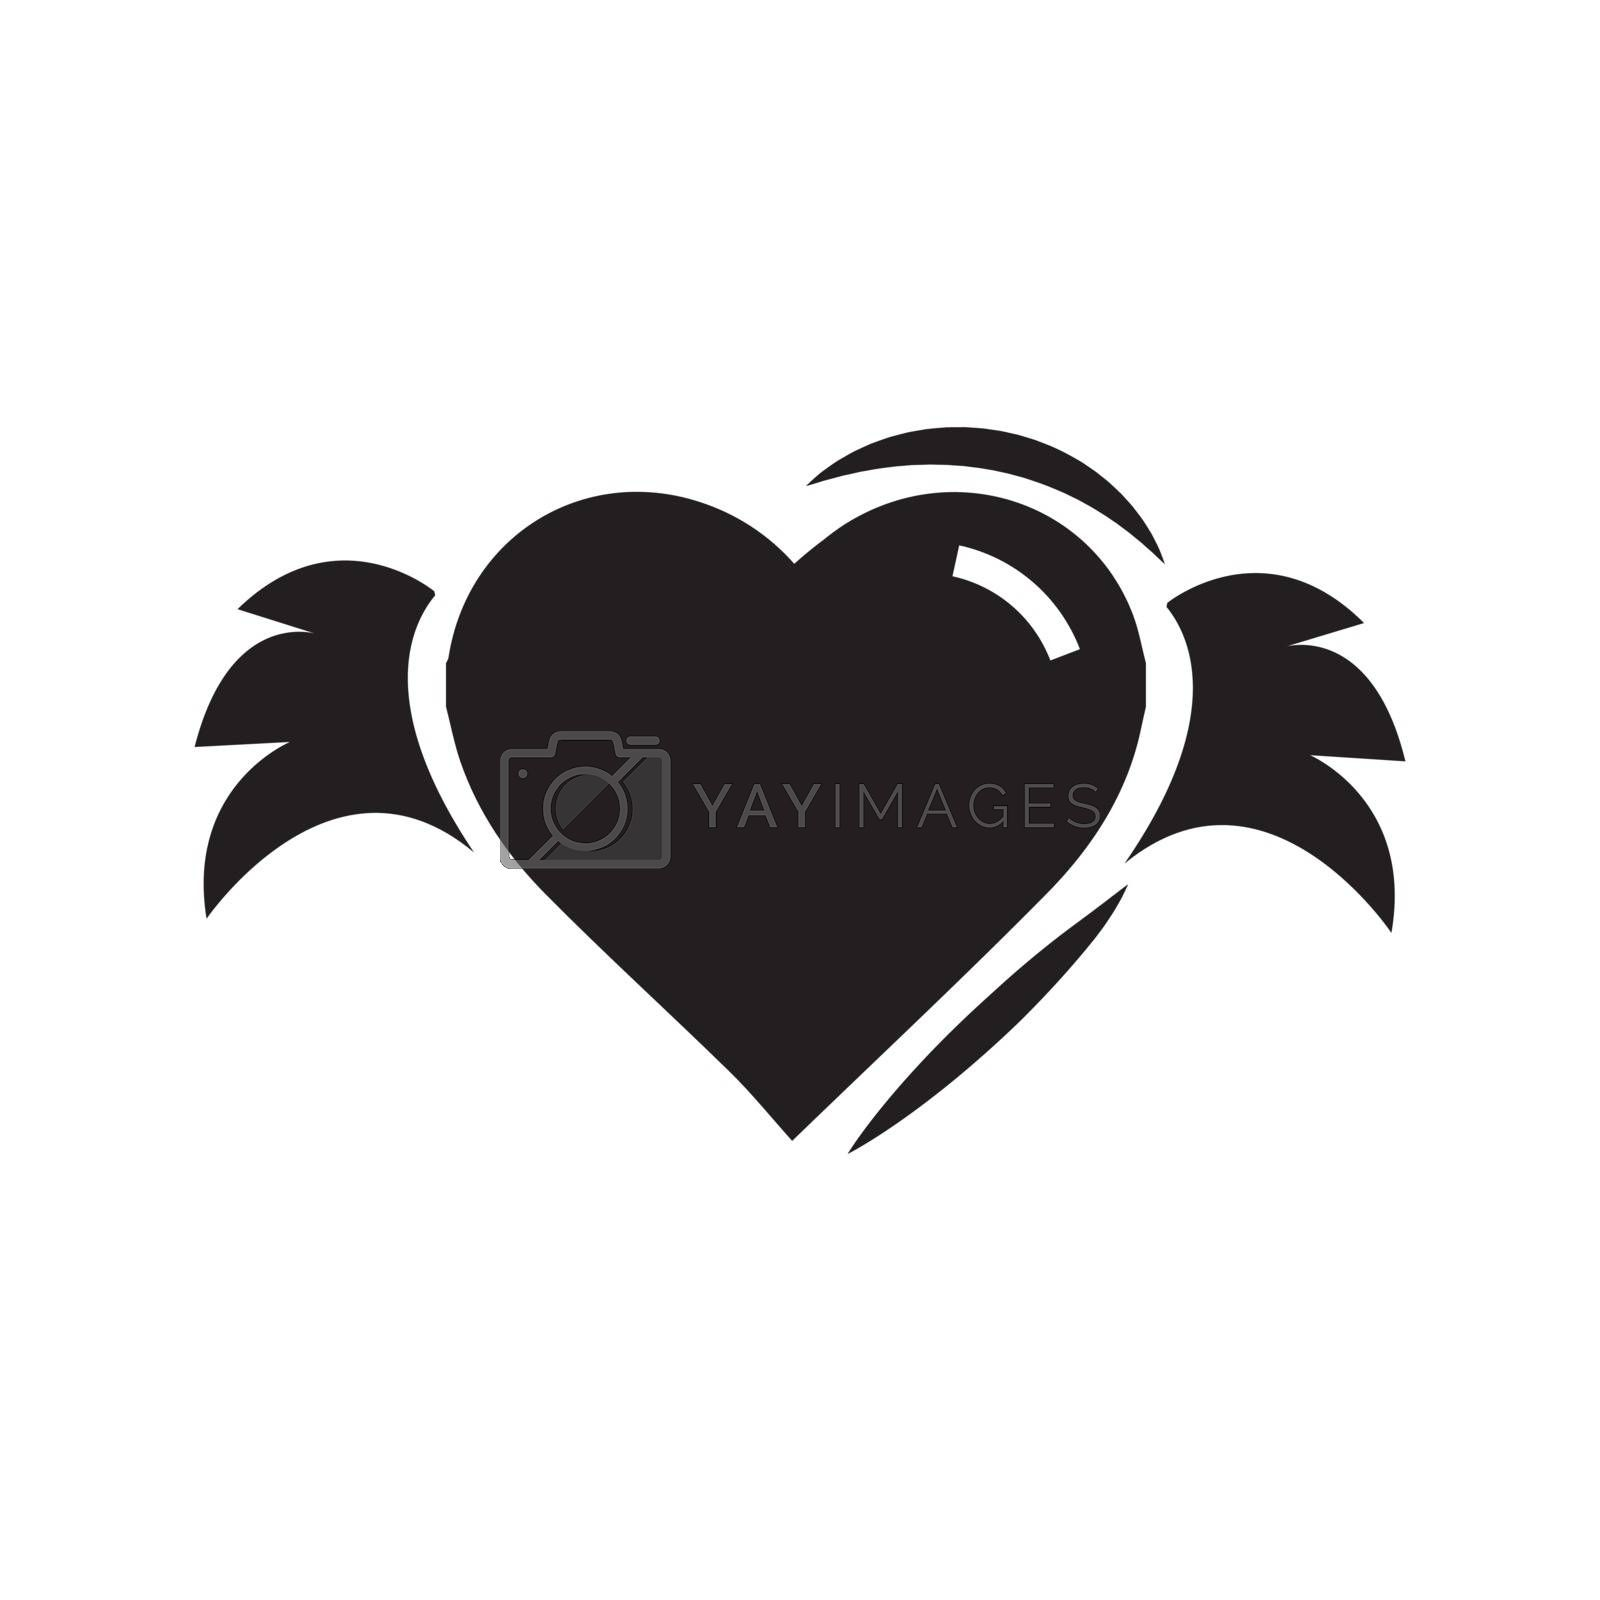 Hearts with wings black color